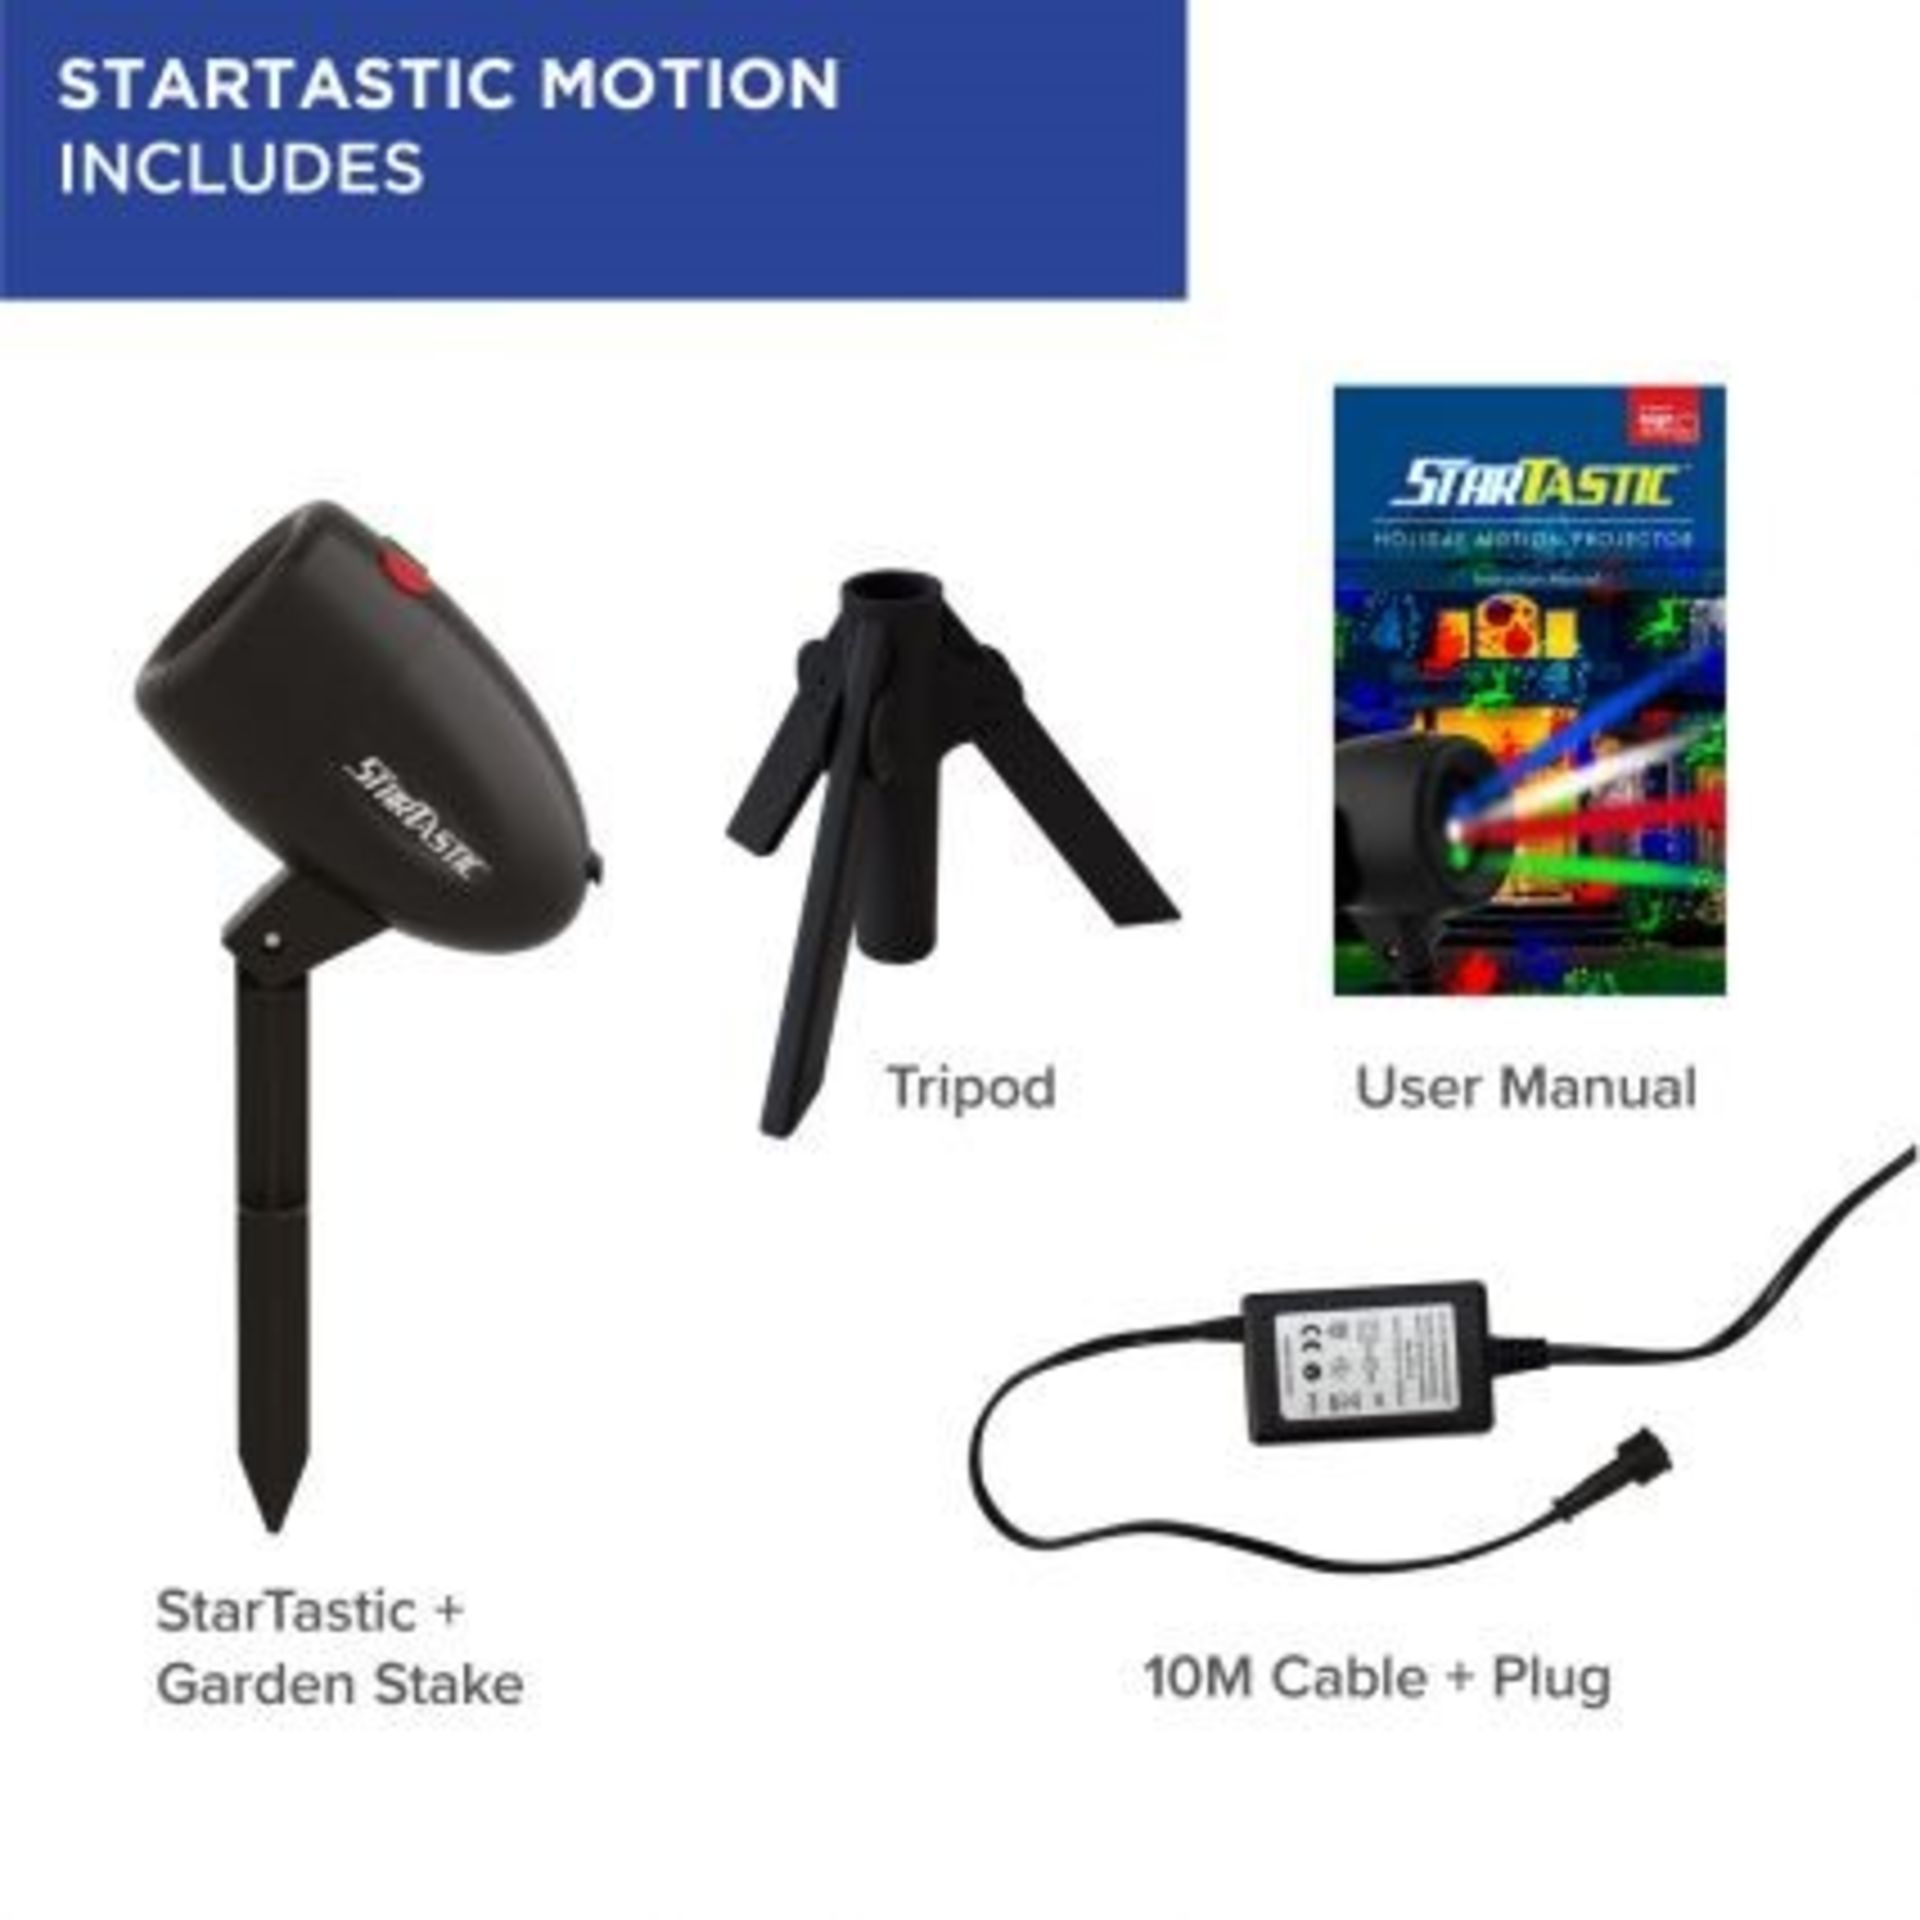 | 1X | BOX OF 6 STARTASTIC ACTION LASER PROJECTORS WITH 6 LASER MODES | NEW AND BOXED | SKU - Image 8 of 8